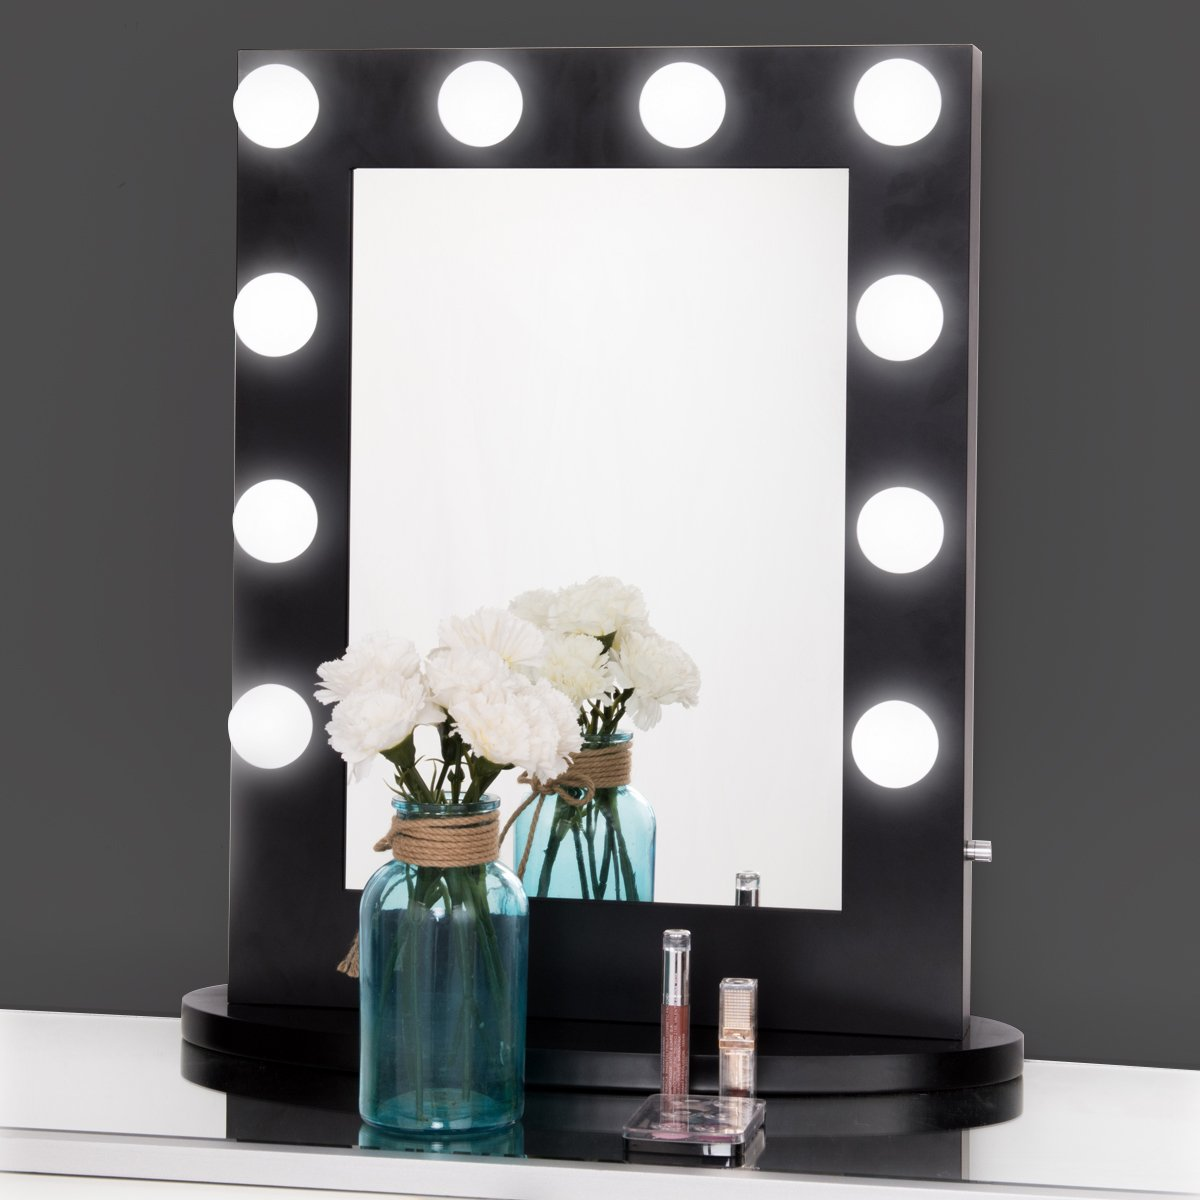 Tangkula Hollywood Makeup Vanity Mirror W/Light Tabletops Lighted Mirror Dimmer LED Illuminated Cosmetic Mirror LED Dimmable Bulbs Black